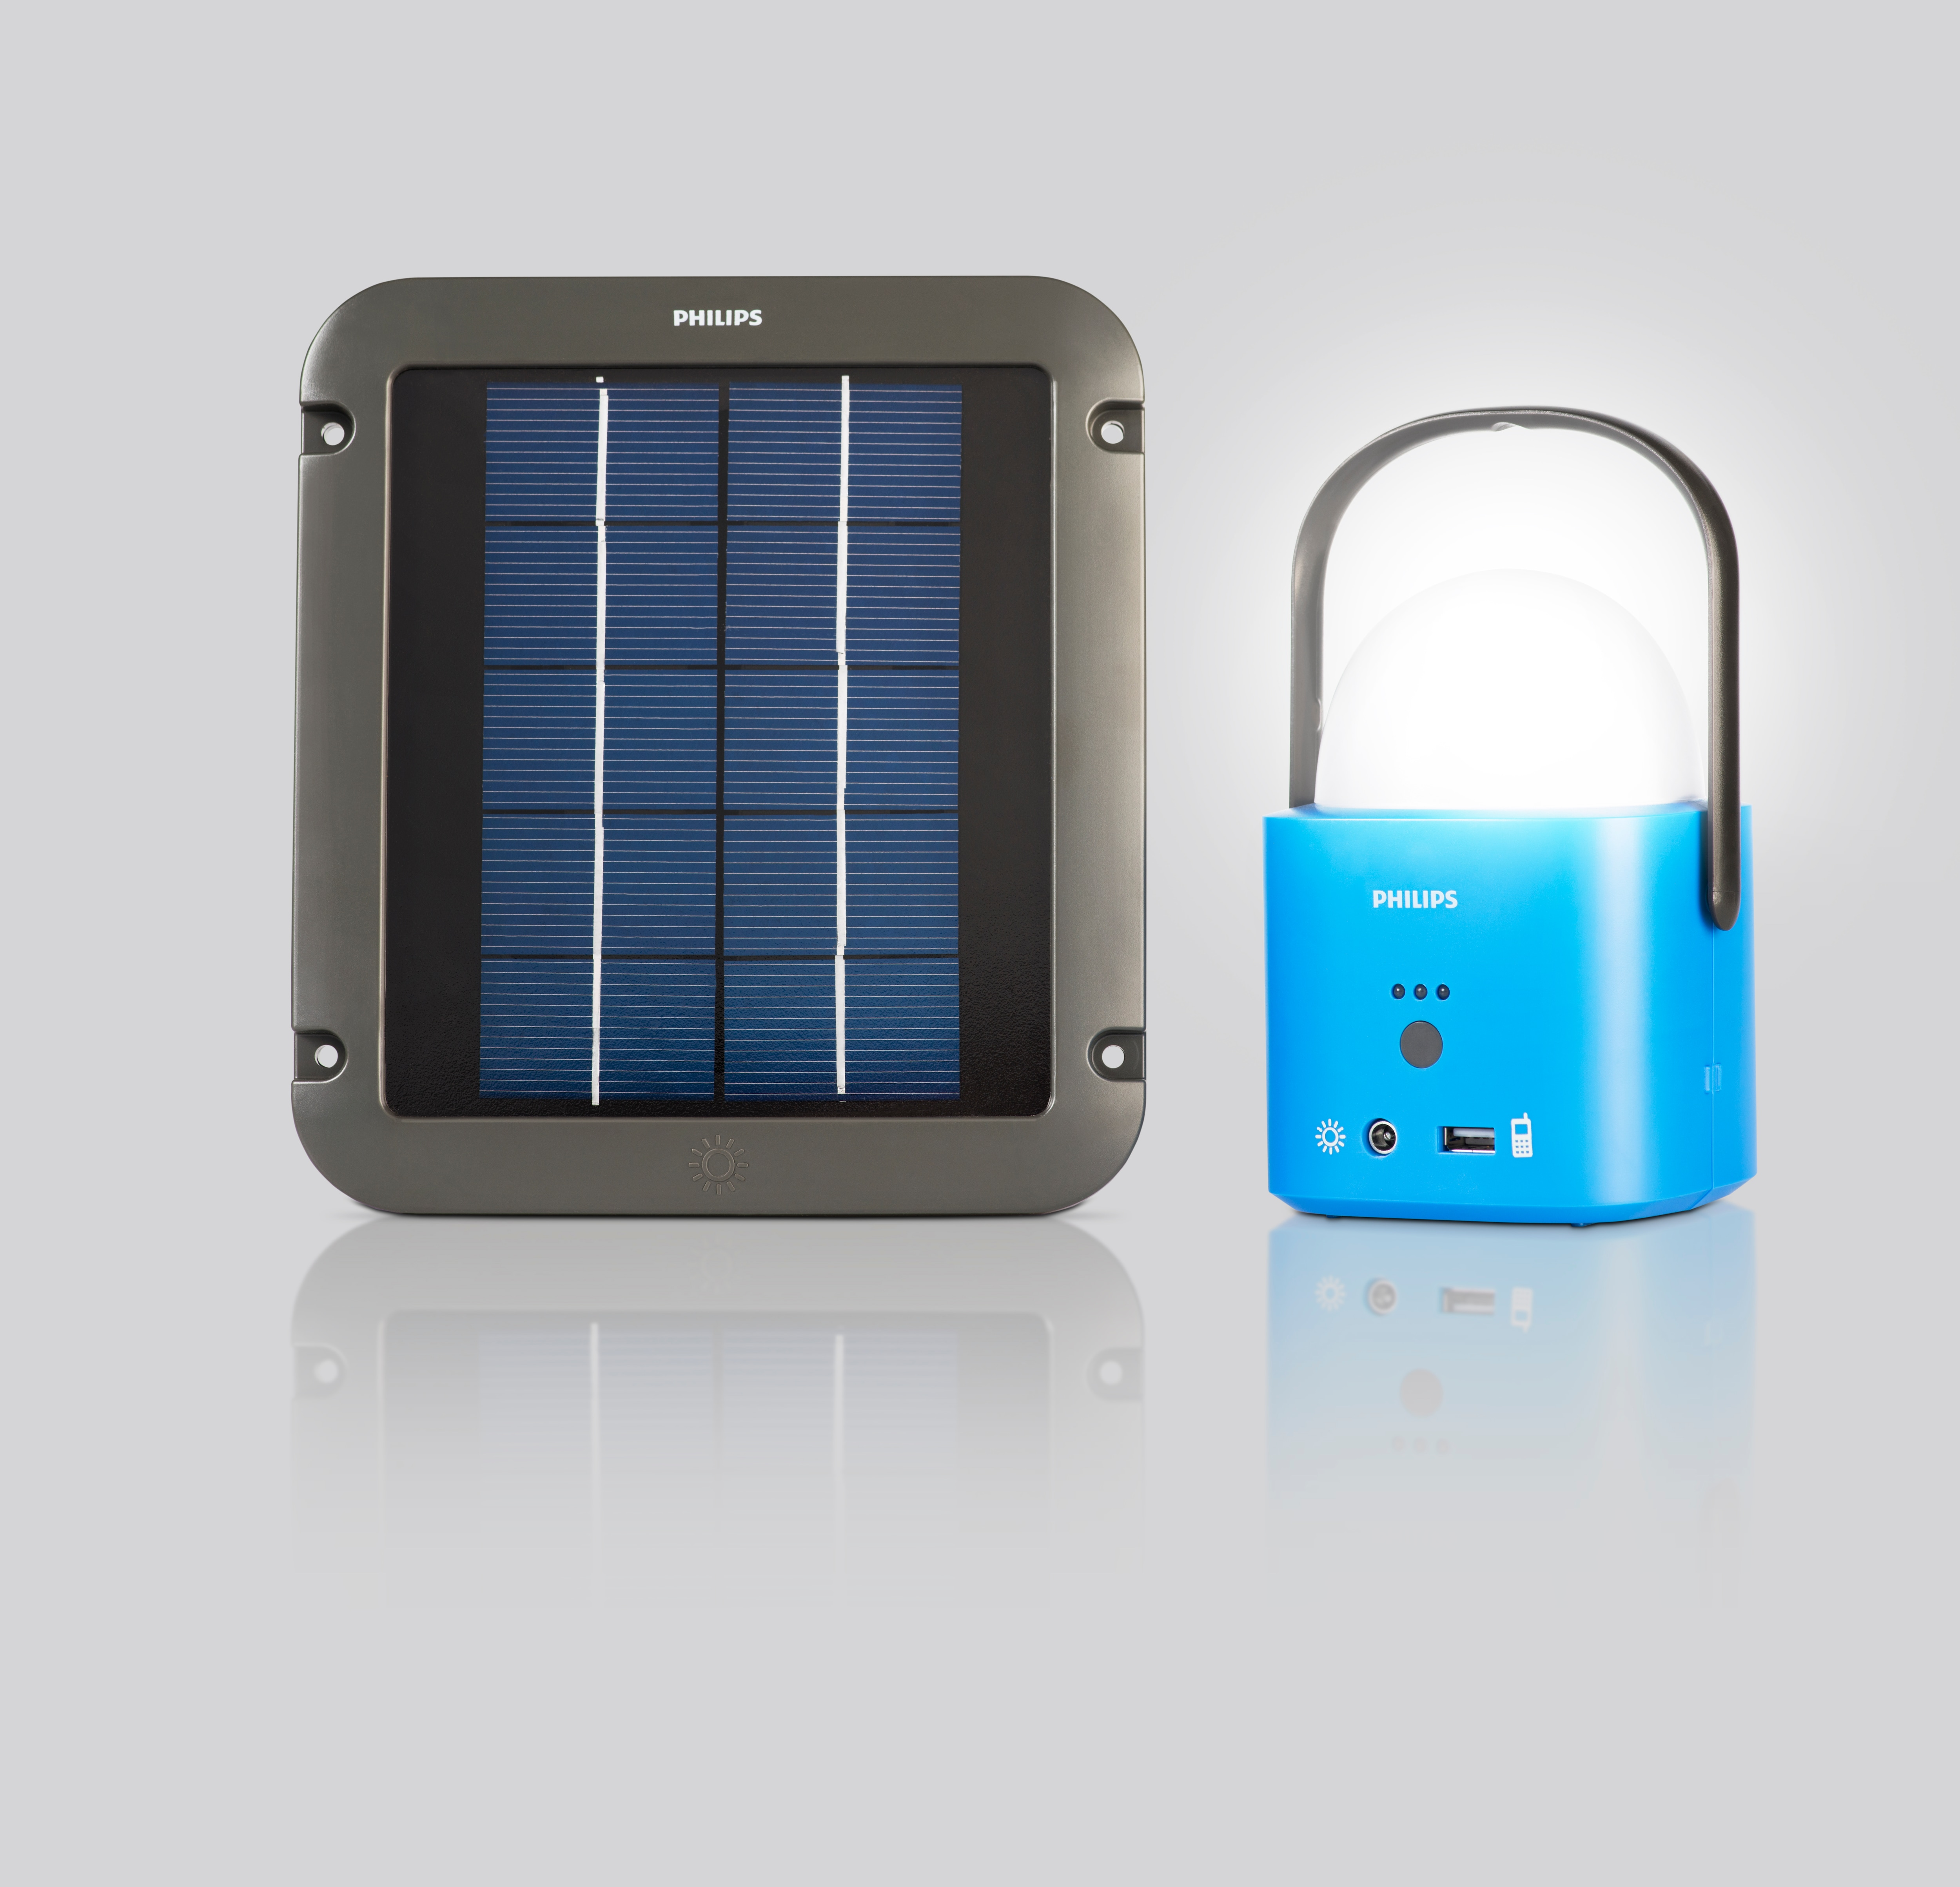 Solar Powered LED Luminaires From Philips Can Brighten The Homes Of Millions